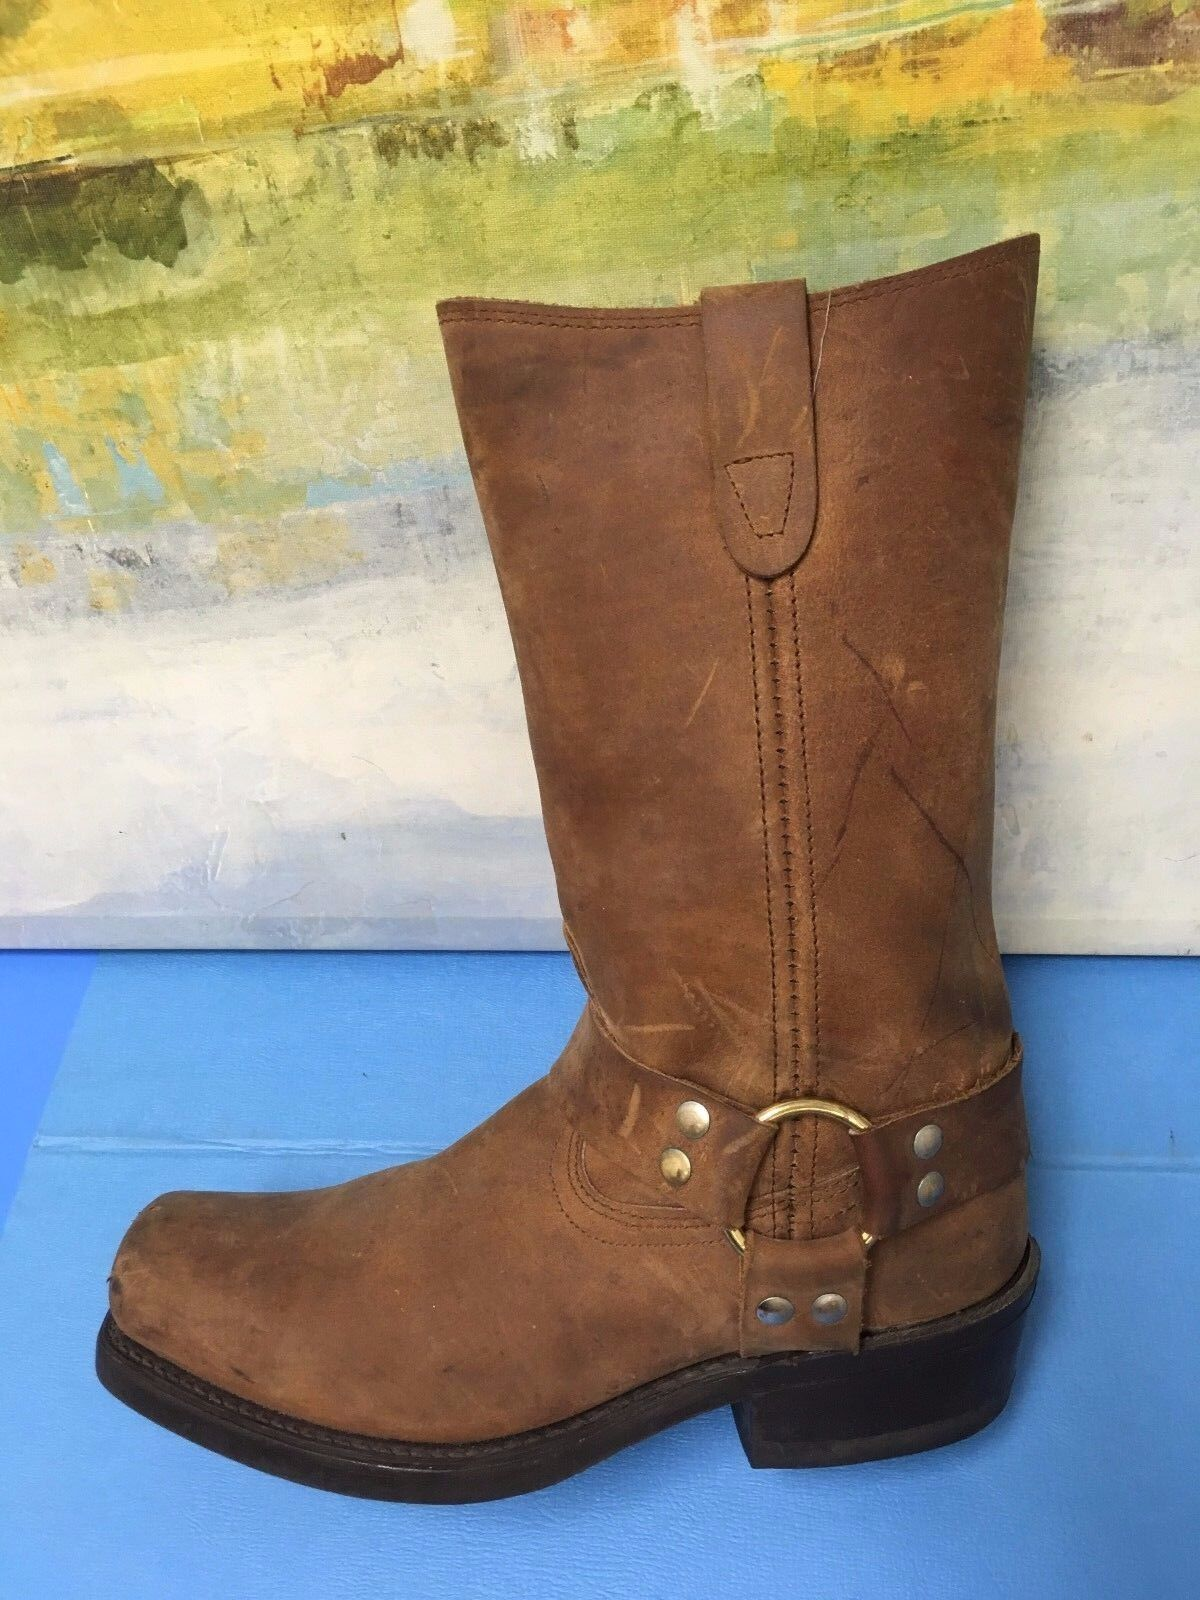 MENS UNBRANDED SQUARE TOE HARNESS MOTORCYCLE LEATHER BROWN BOOTS SIZE 7.5 D